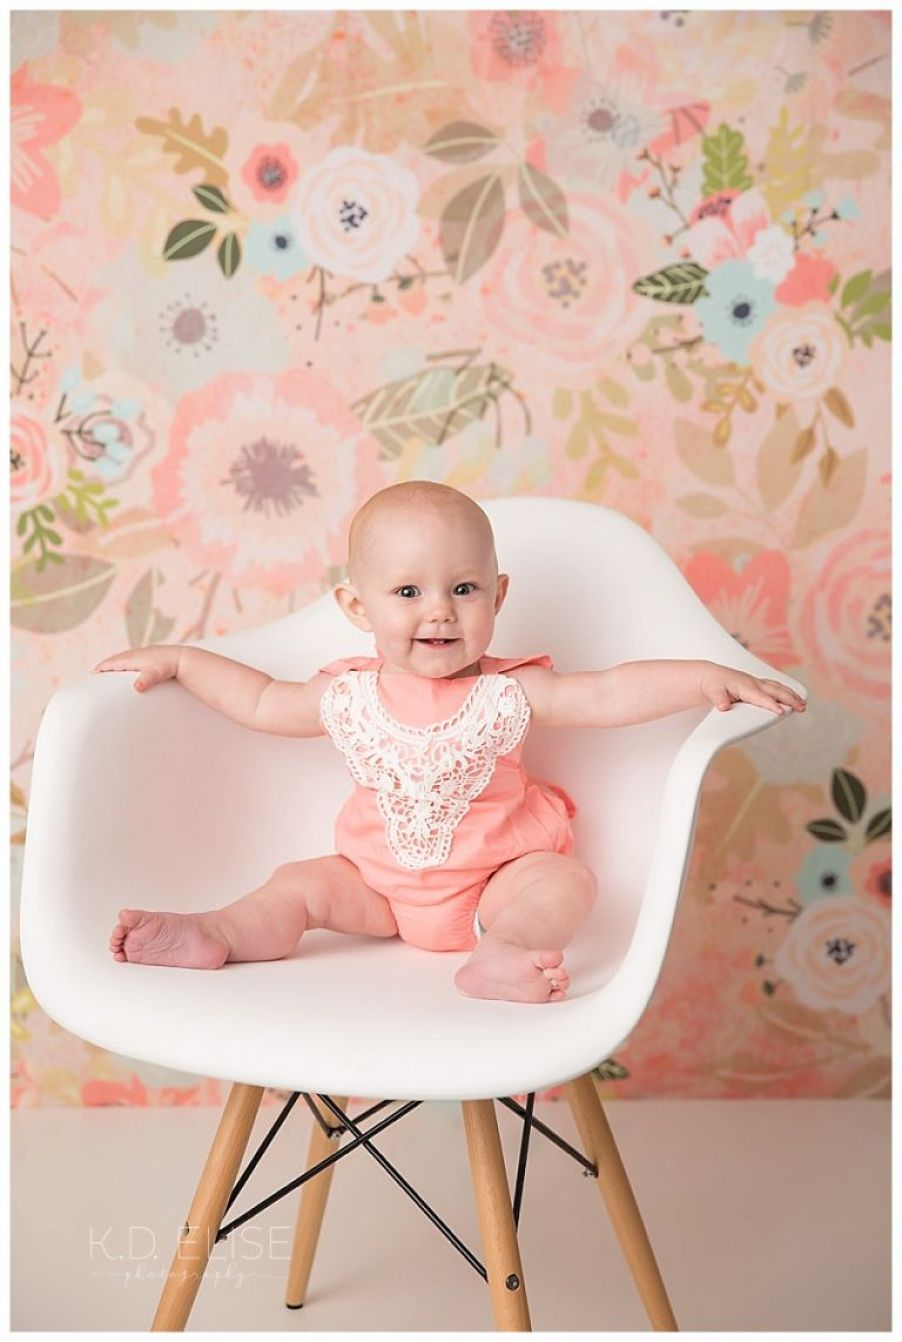 Baby girl in a white chair sitting in front of a floral backdrop.